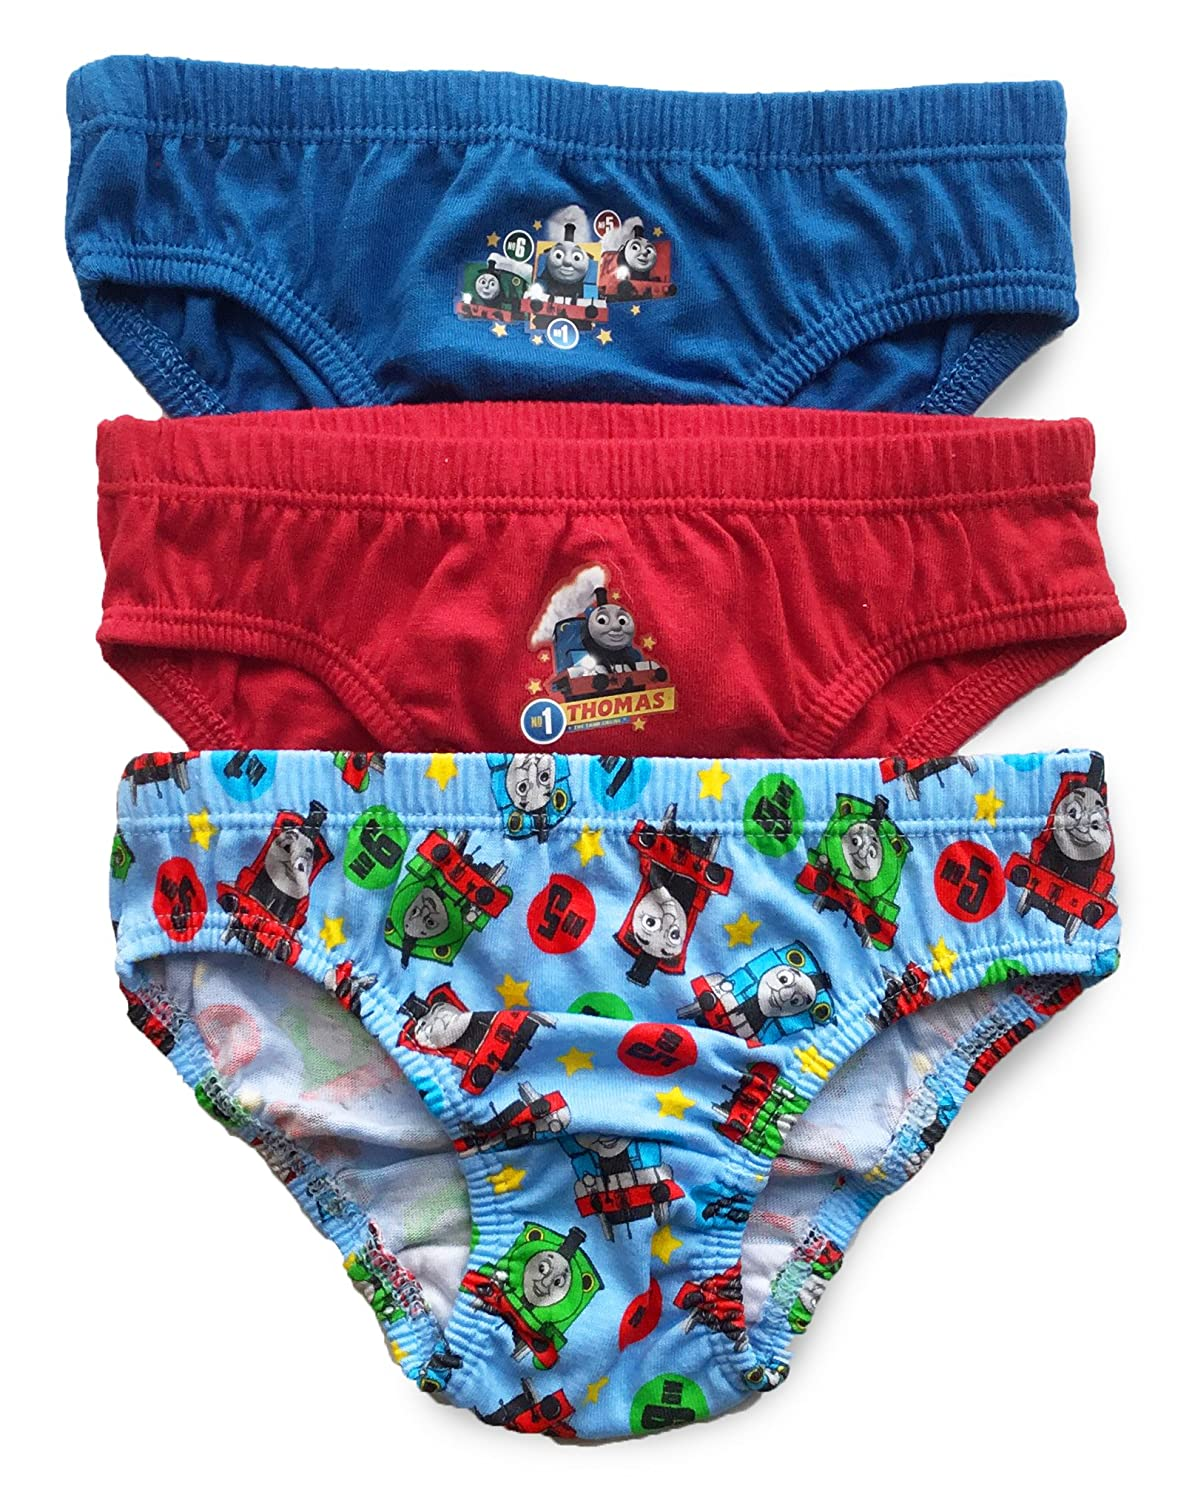 Boys Thomas & Friends - Briefs Pants Underpants Underwear Slips - 3 Pack - Official Licenced 100% Cotton